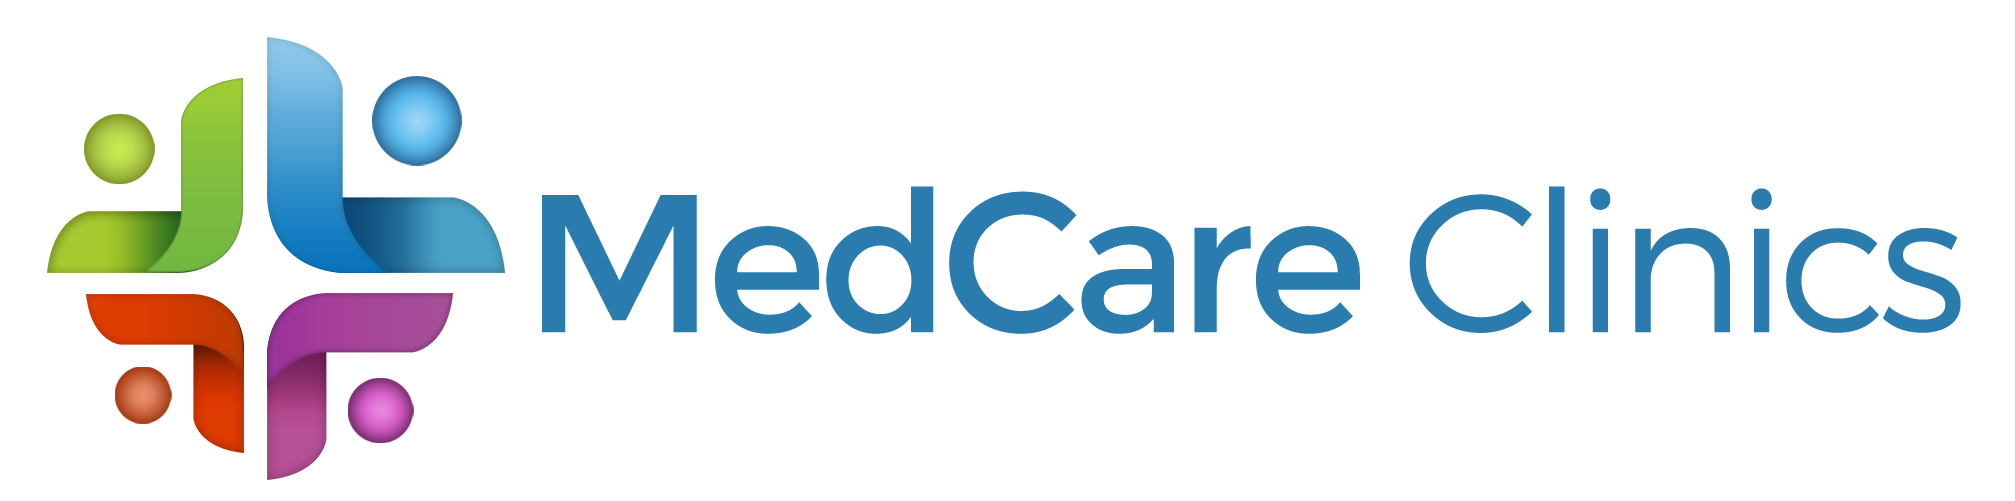 MedCare Clinics | Family Practice + Walk-In Clinic + Specialist Care |